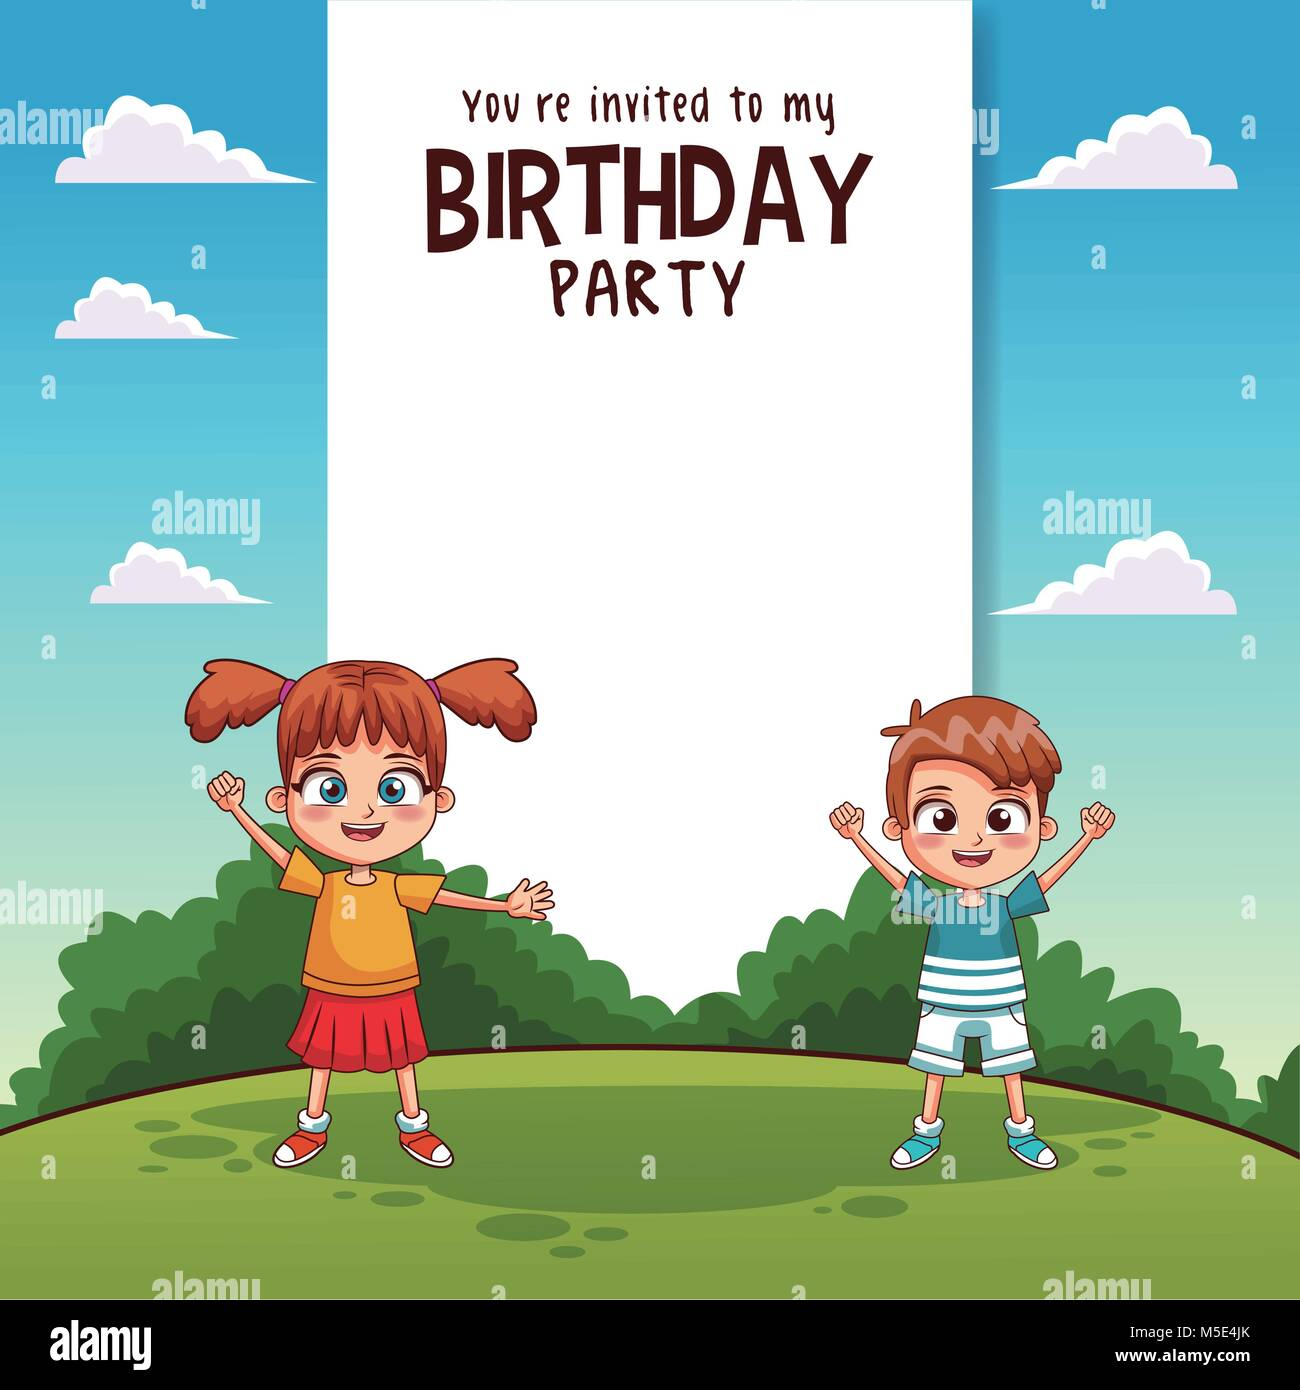 Kids Birthday Party Card Invitation